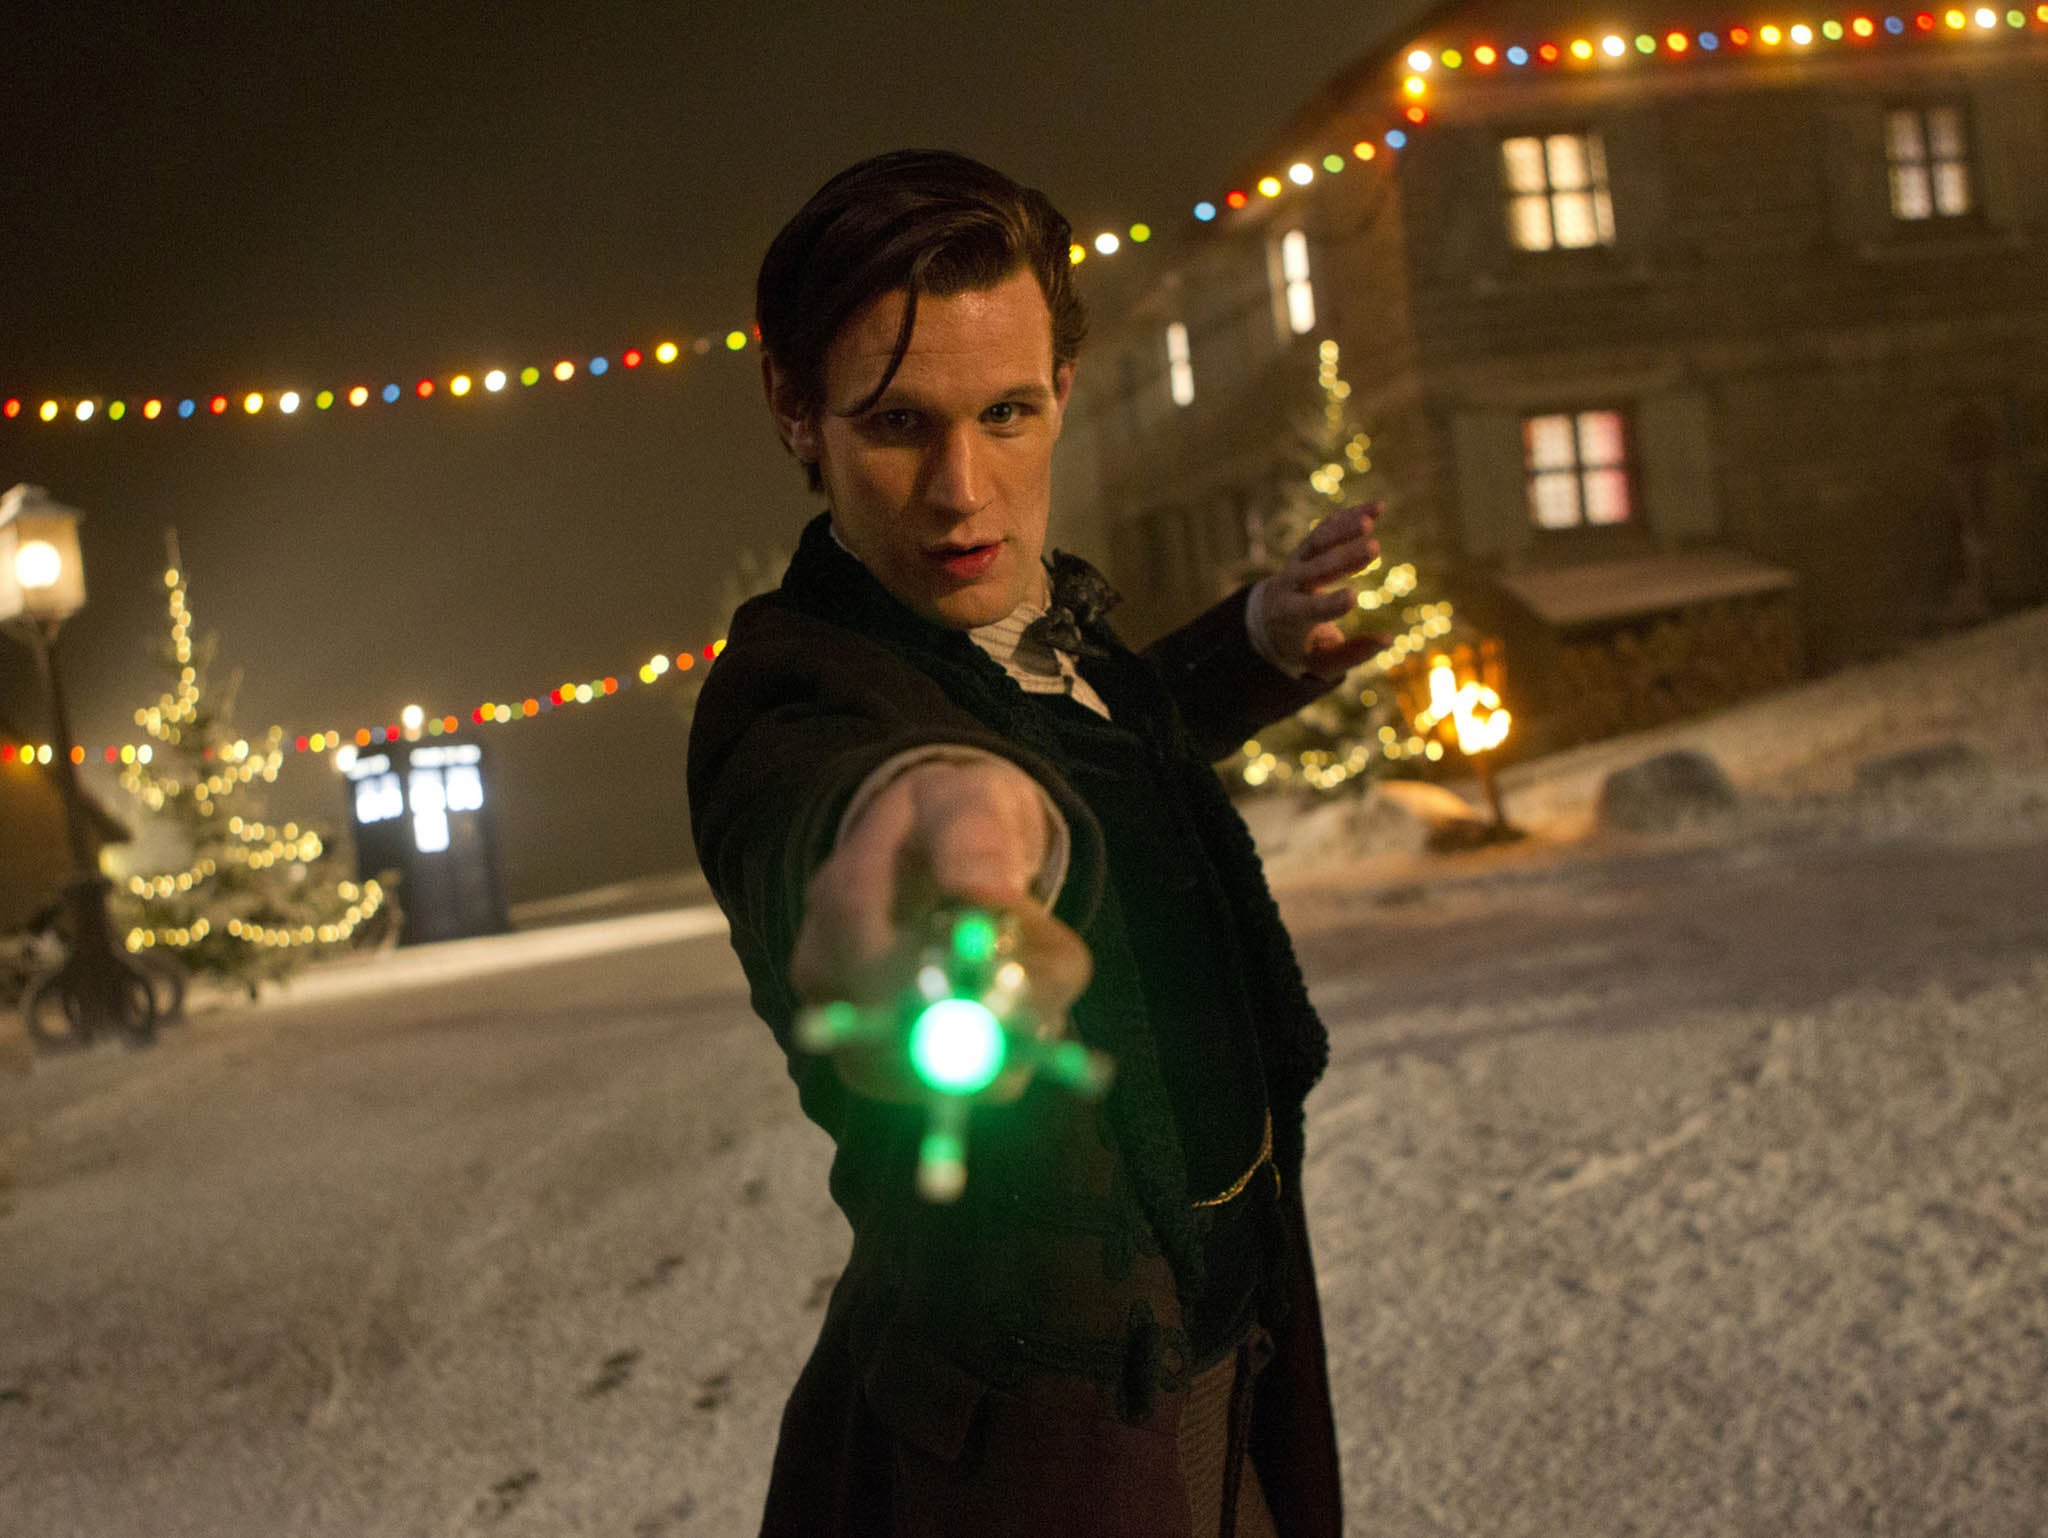 Doctor Who Christmas Special 2013.Doctor Who Christmas Special 2013 New Pictures Released Of